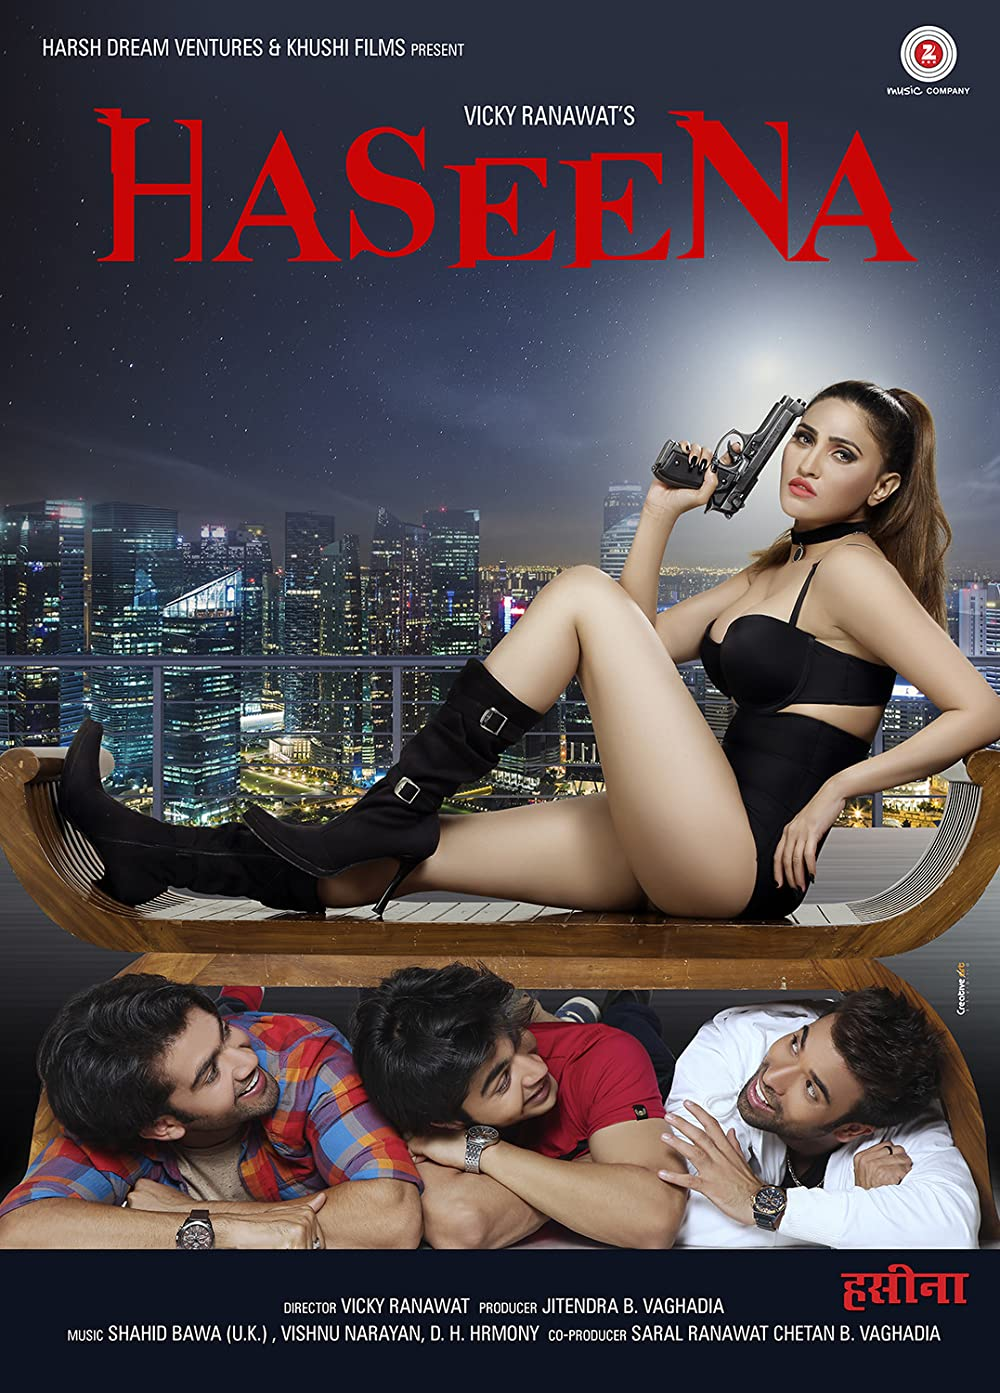 18+ Haseena 2018 Hindi 1080p HDRip 1840MB Download